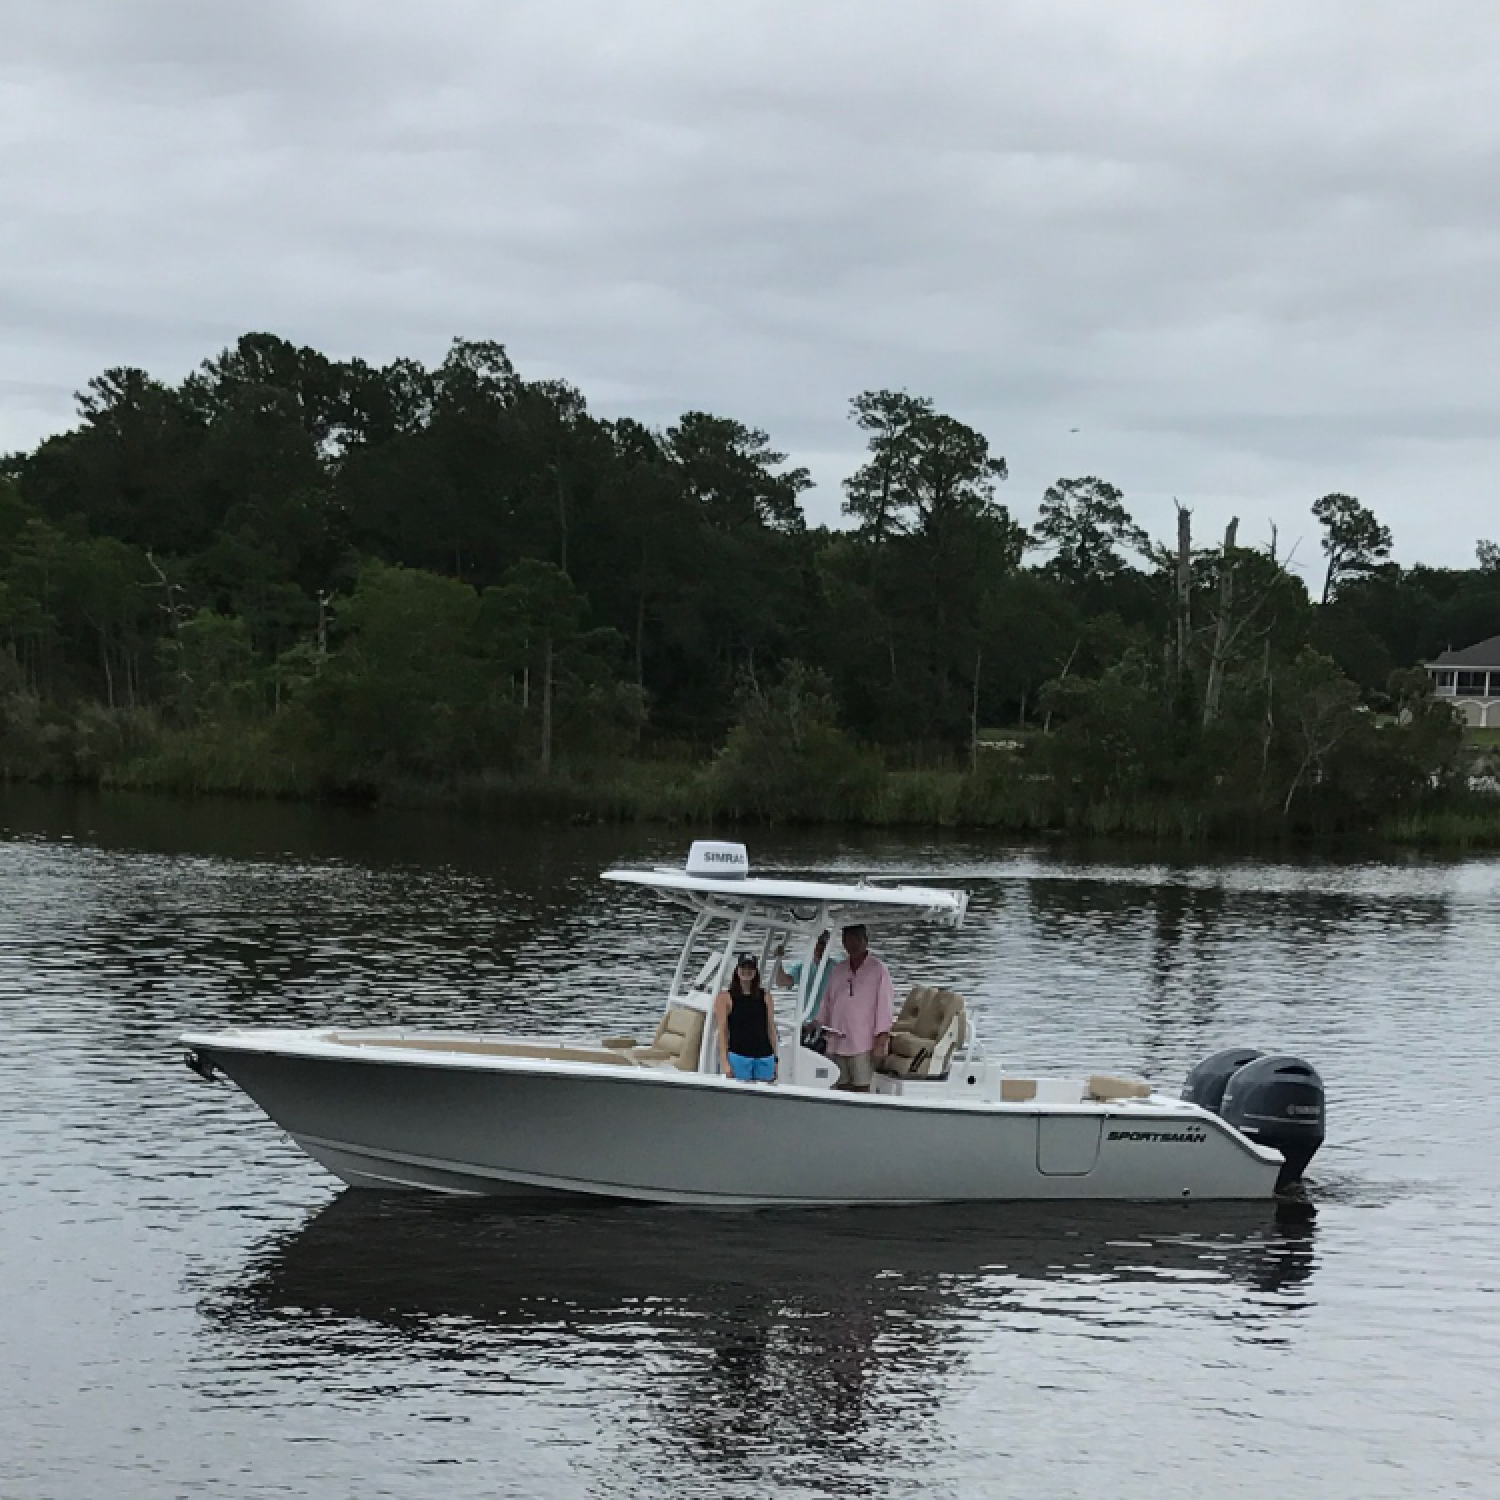 Title: First Trip - On board their Sportsman Open 282 Center Console - Location: Fowl River, Alabama. Participating in the Photo Contest #SportsmanOctober2018